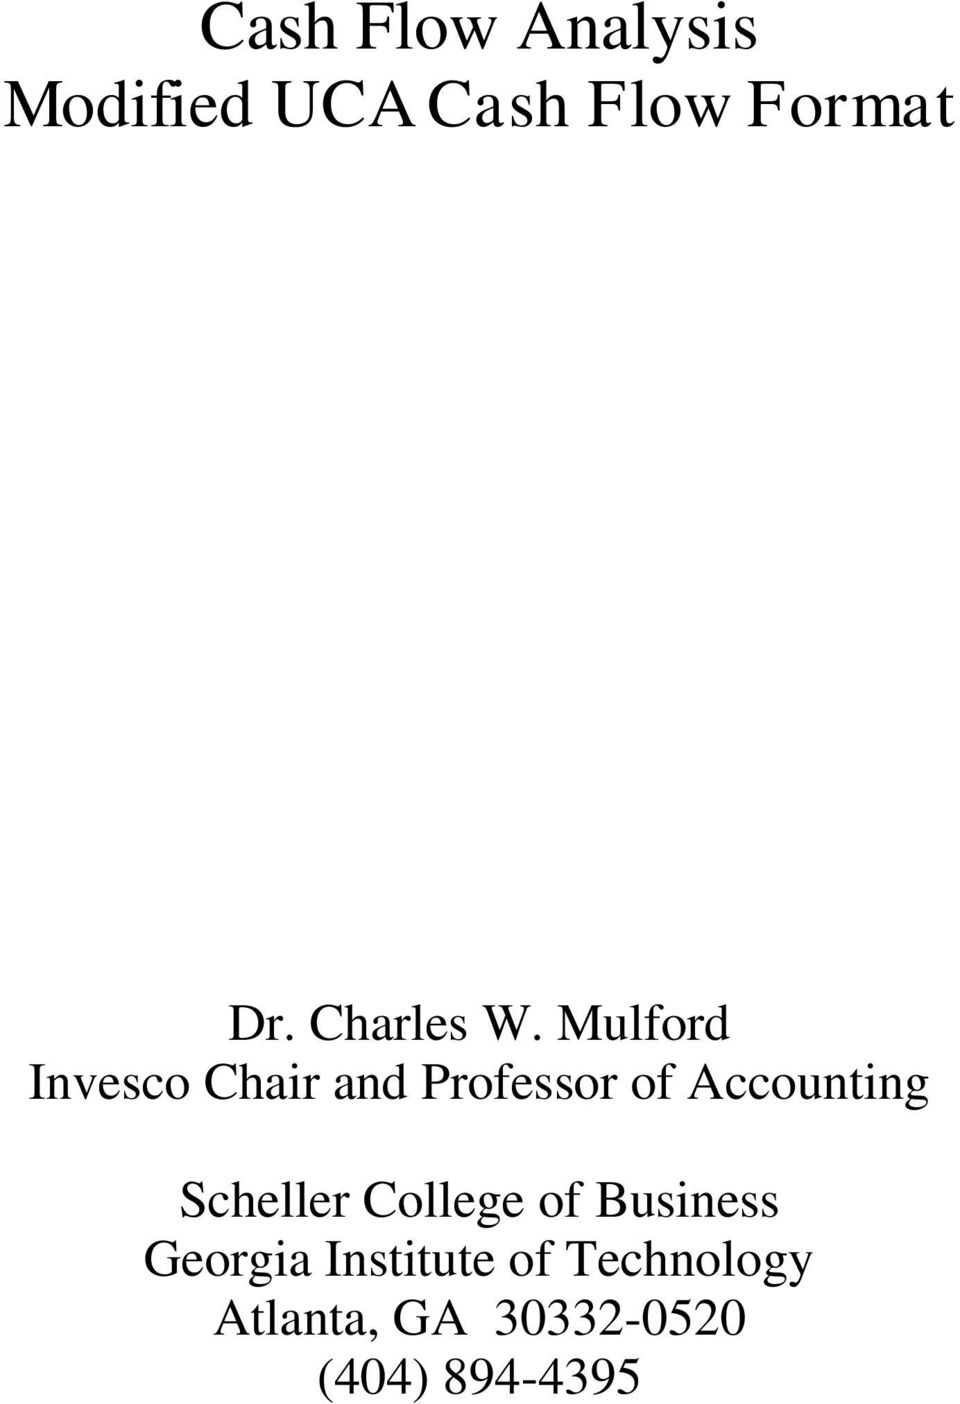 Mulford Invesco Chair and Professor of Accounting